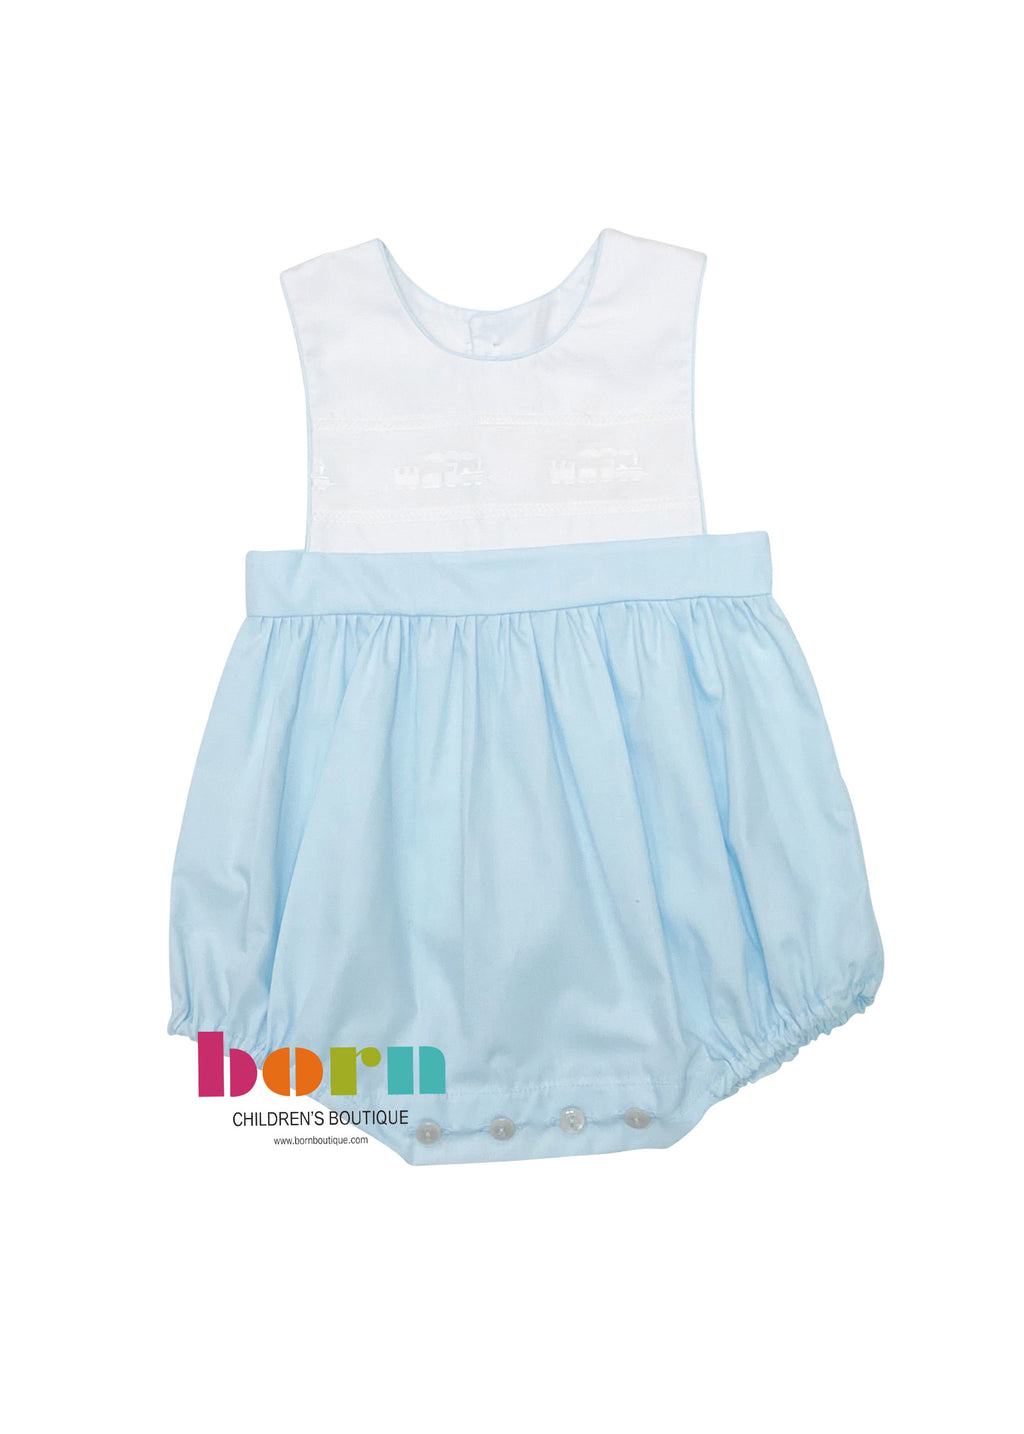 LaJenn Train Bubble Blue - Born Childrens Boutique